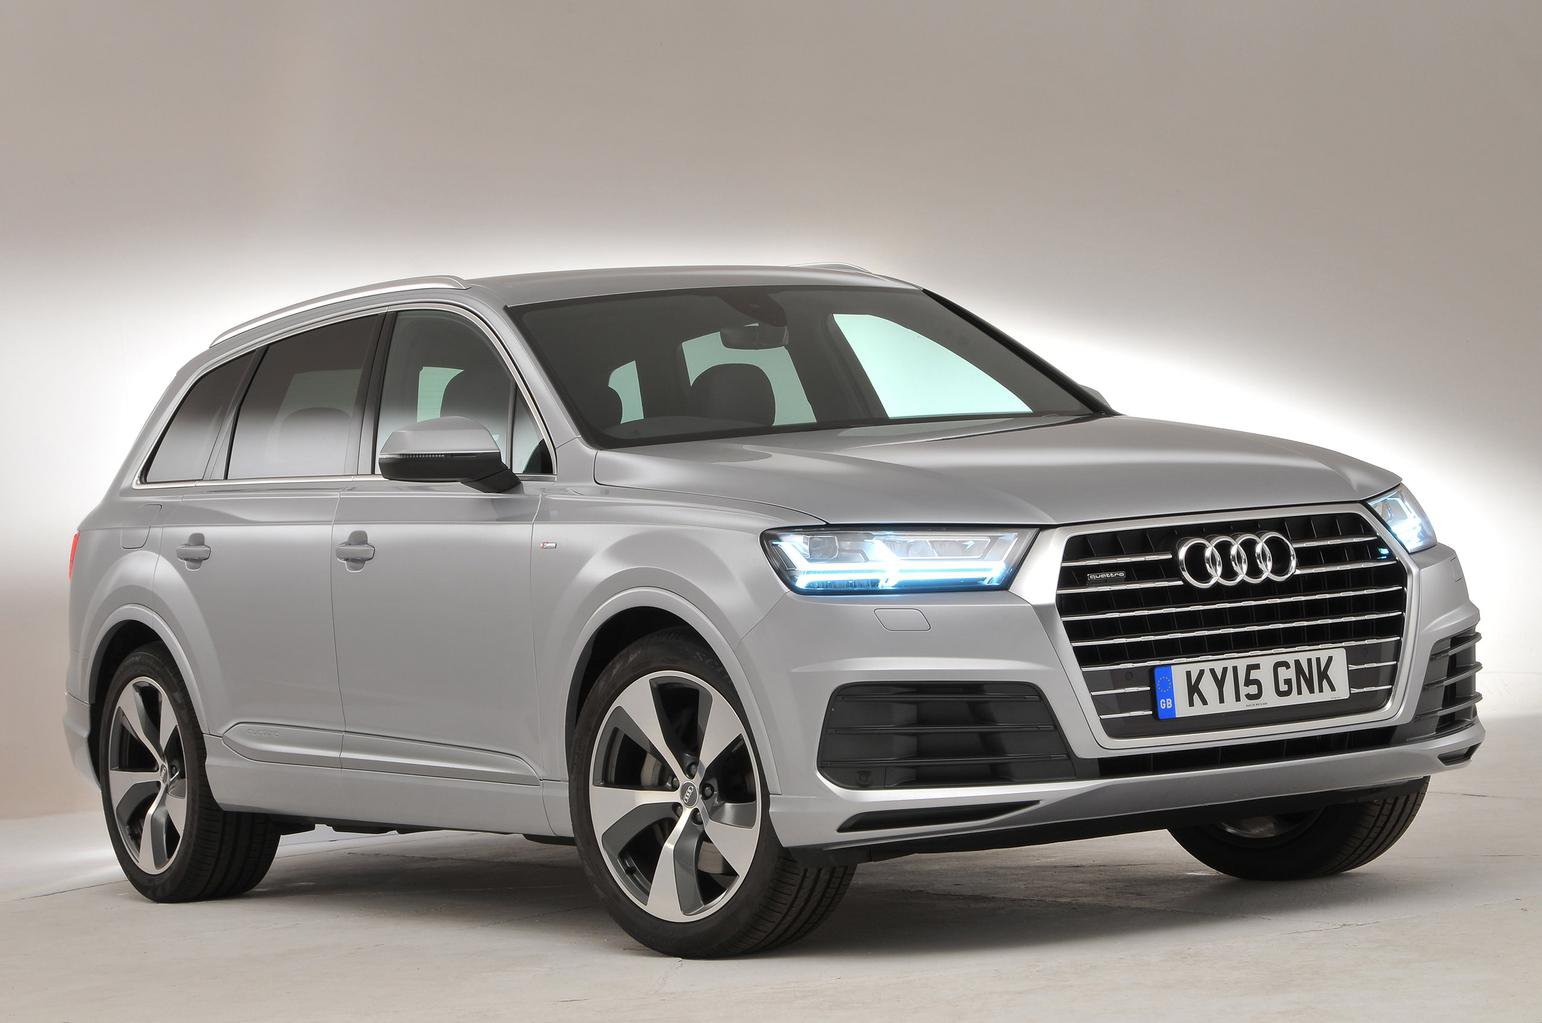 10 reasons to buy an Audi Q7